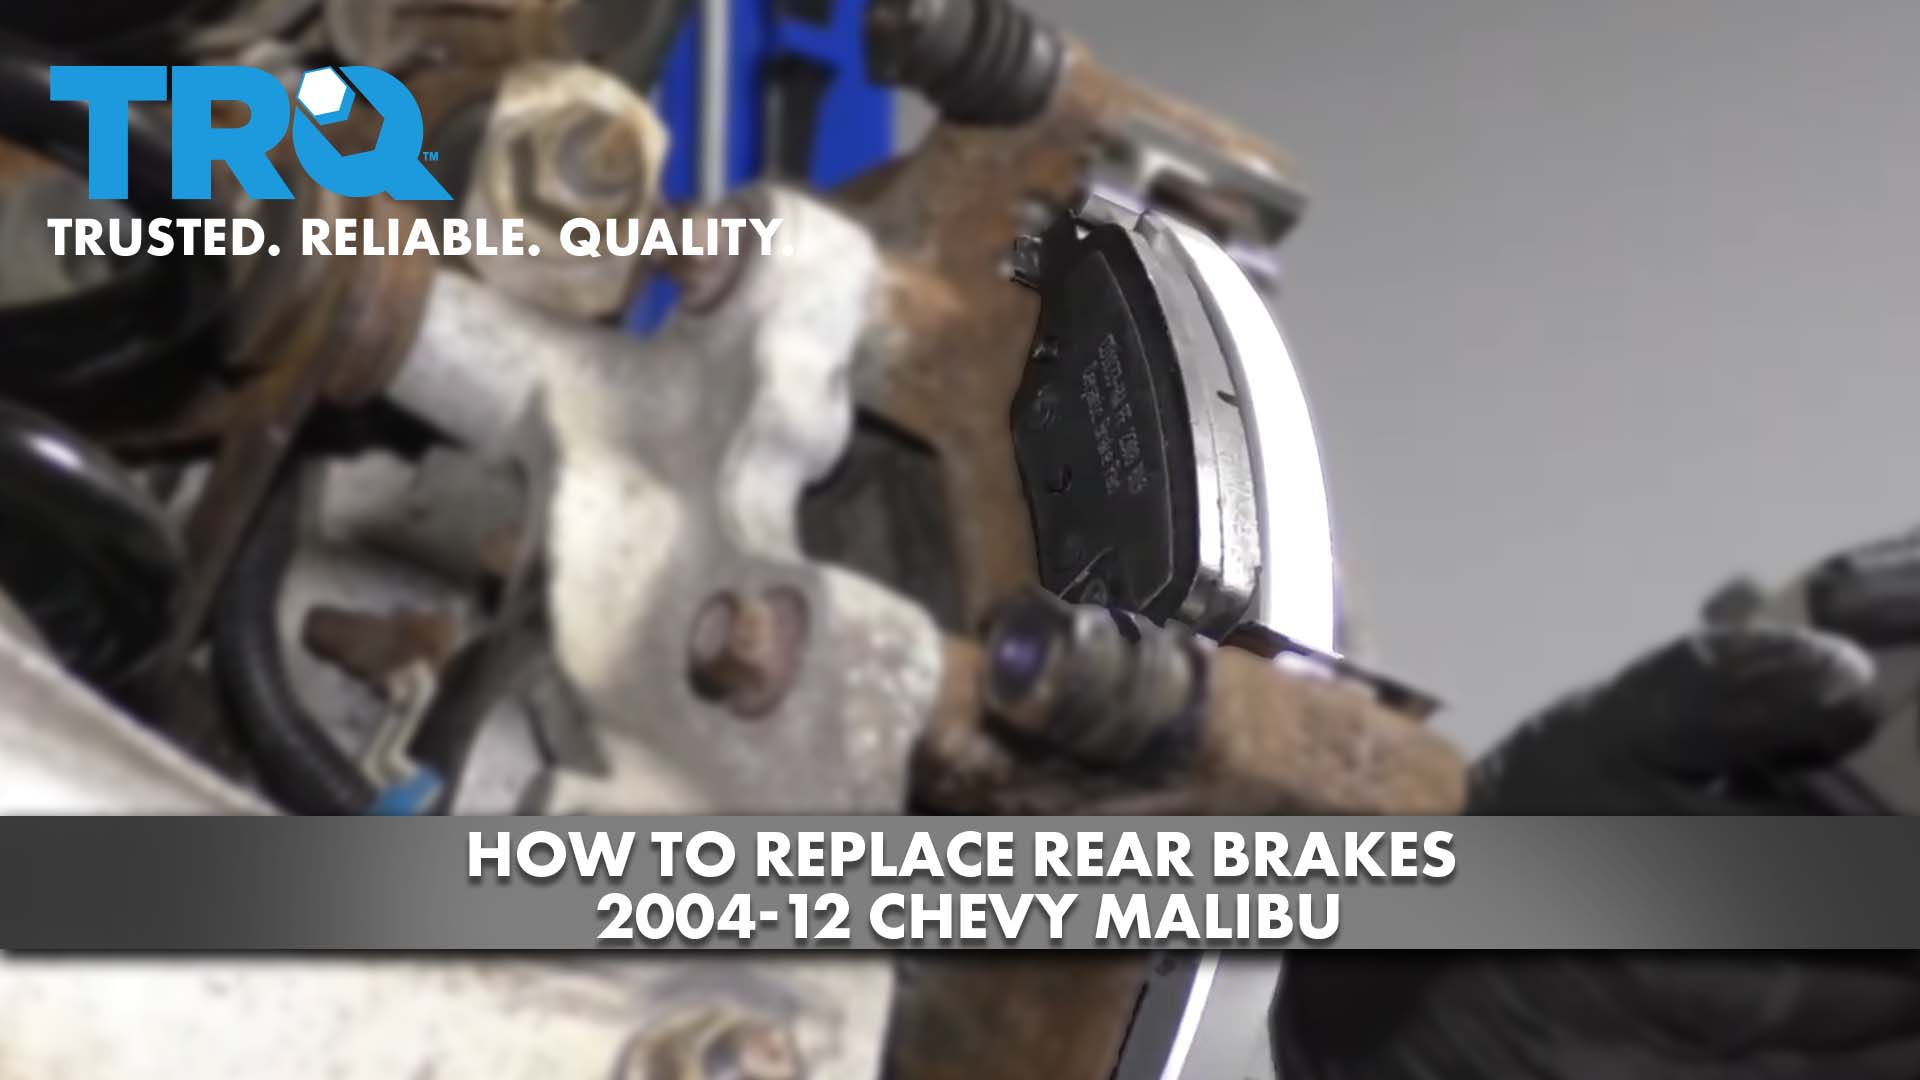 How to Replace Rear Brakes 2004-12 Chevy Malibu